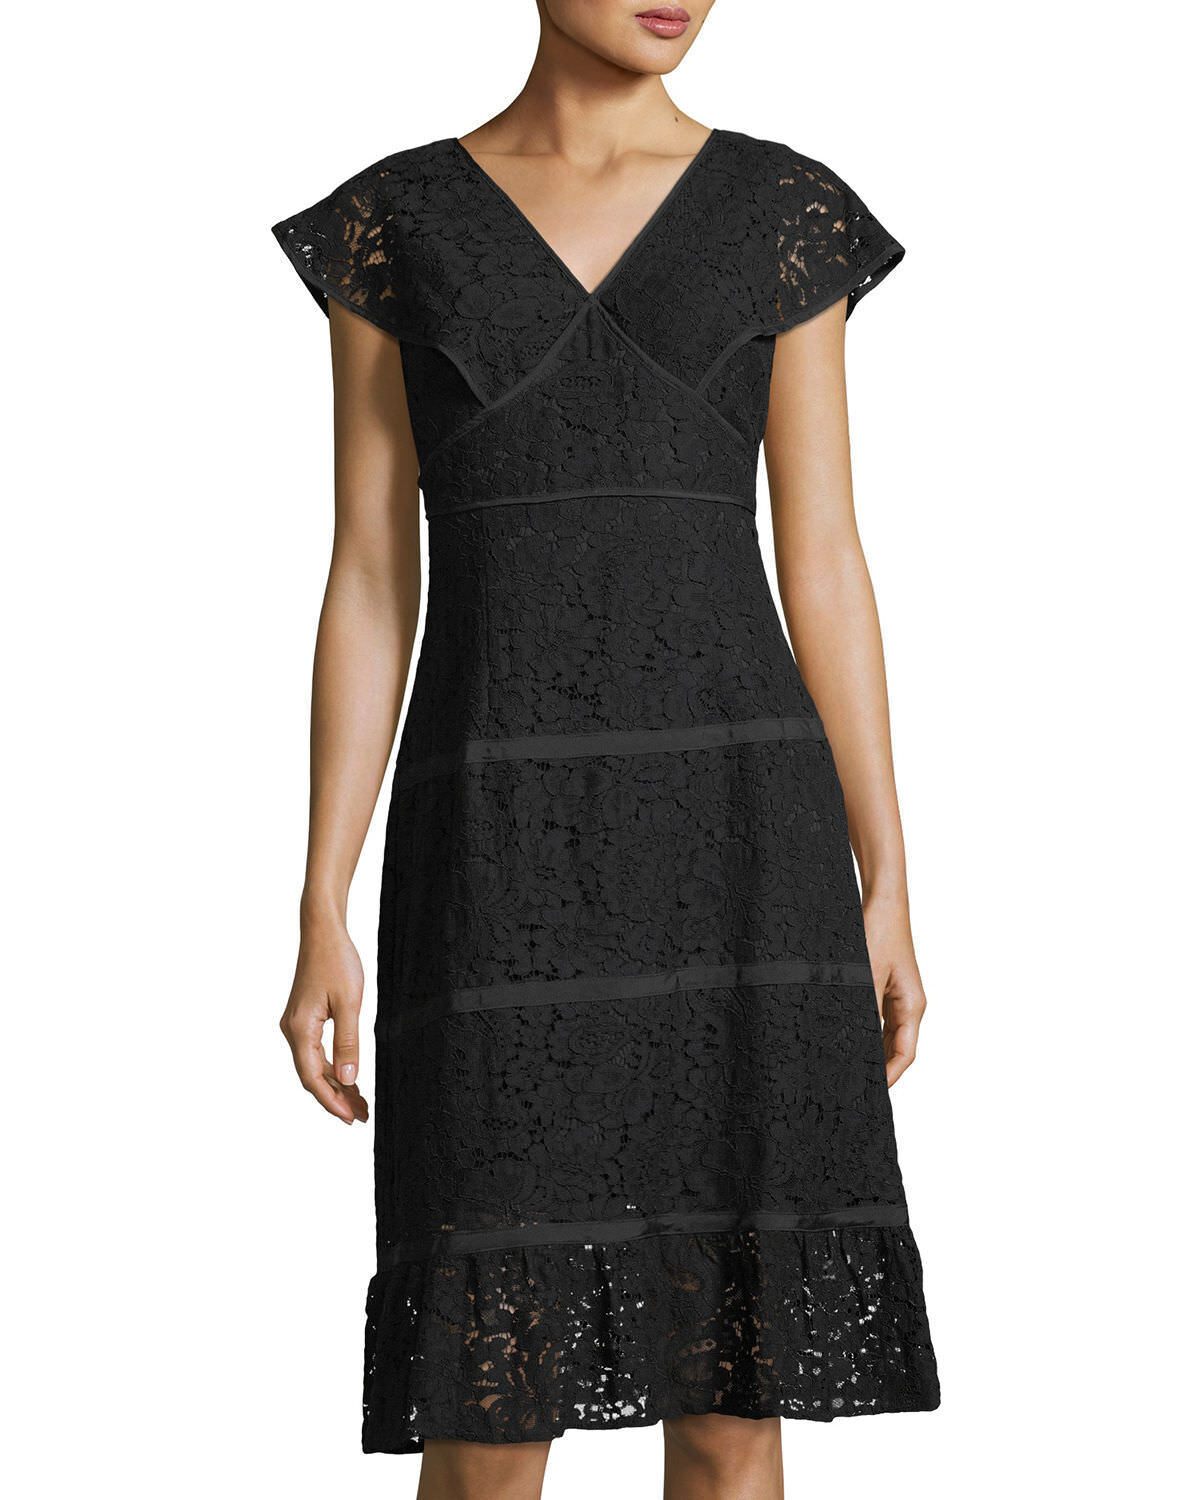 NWT NANETTE NANETTE LEPORE Sz8 CAP SLEEVE FLOUNCE HEM SHEATH LACE DRESS BLA